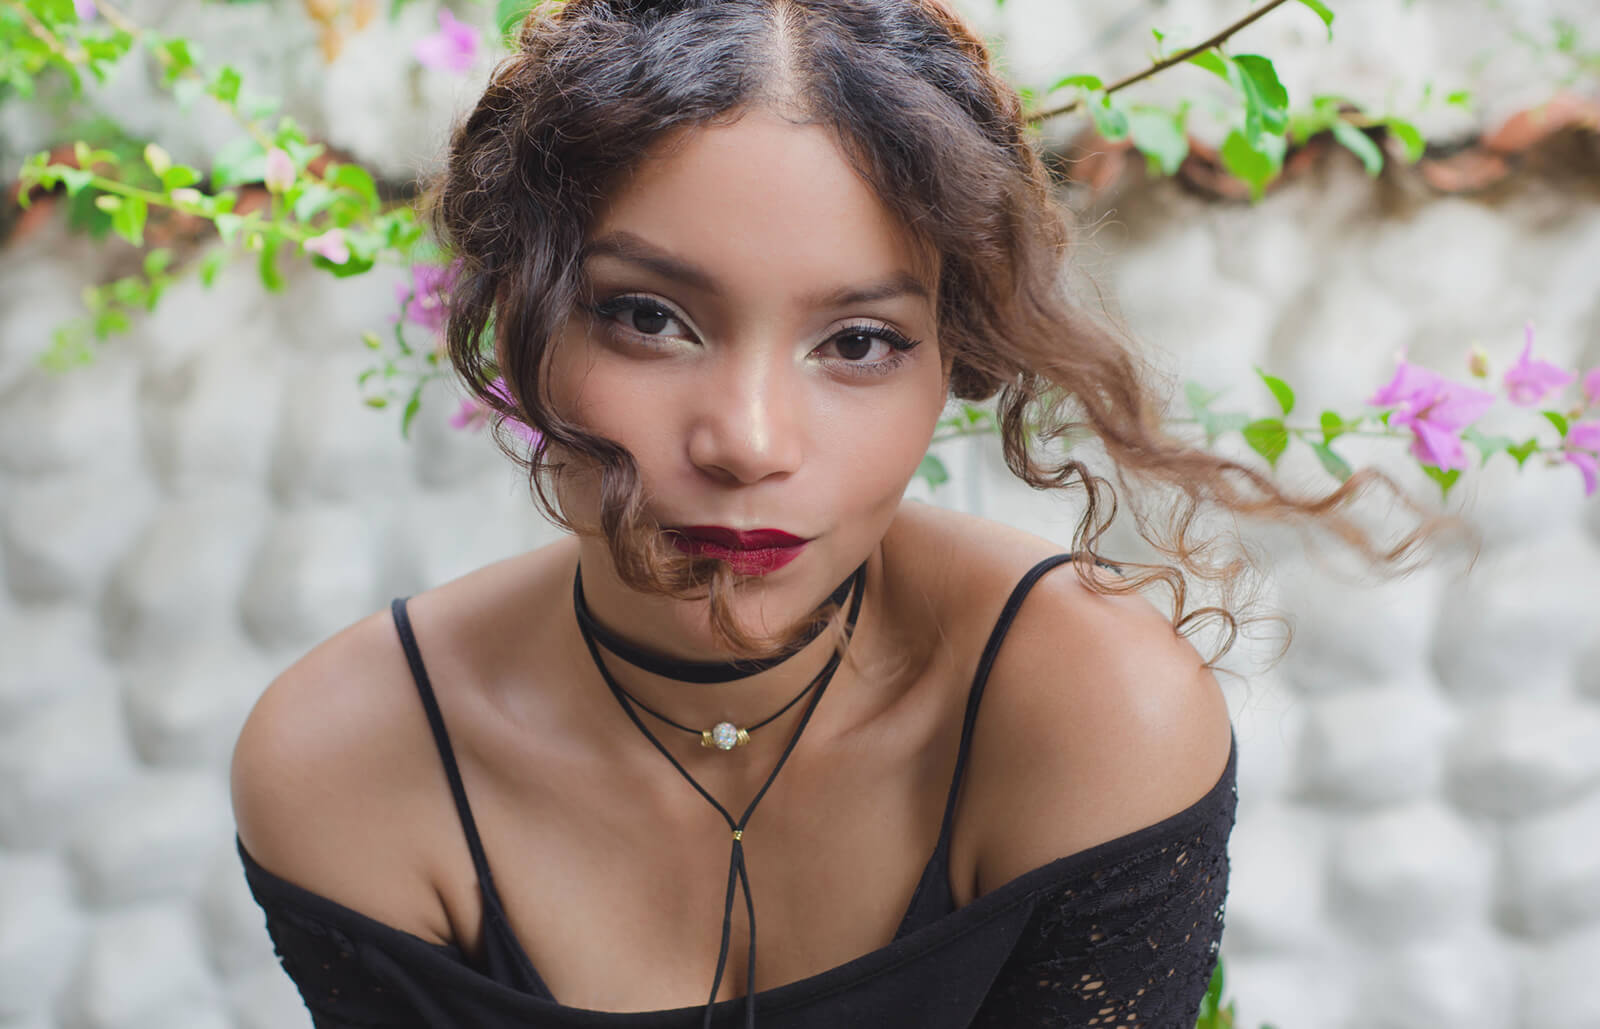 How to Attract a Taurus Woman | LoveToKnow